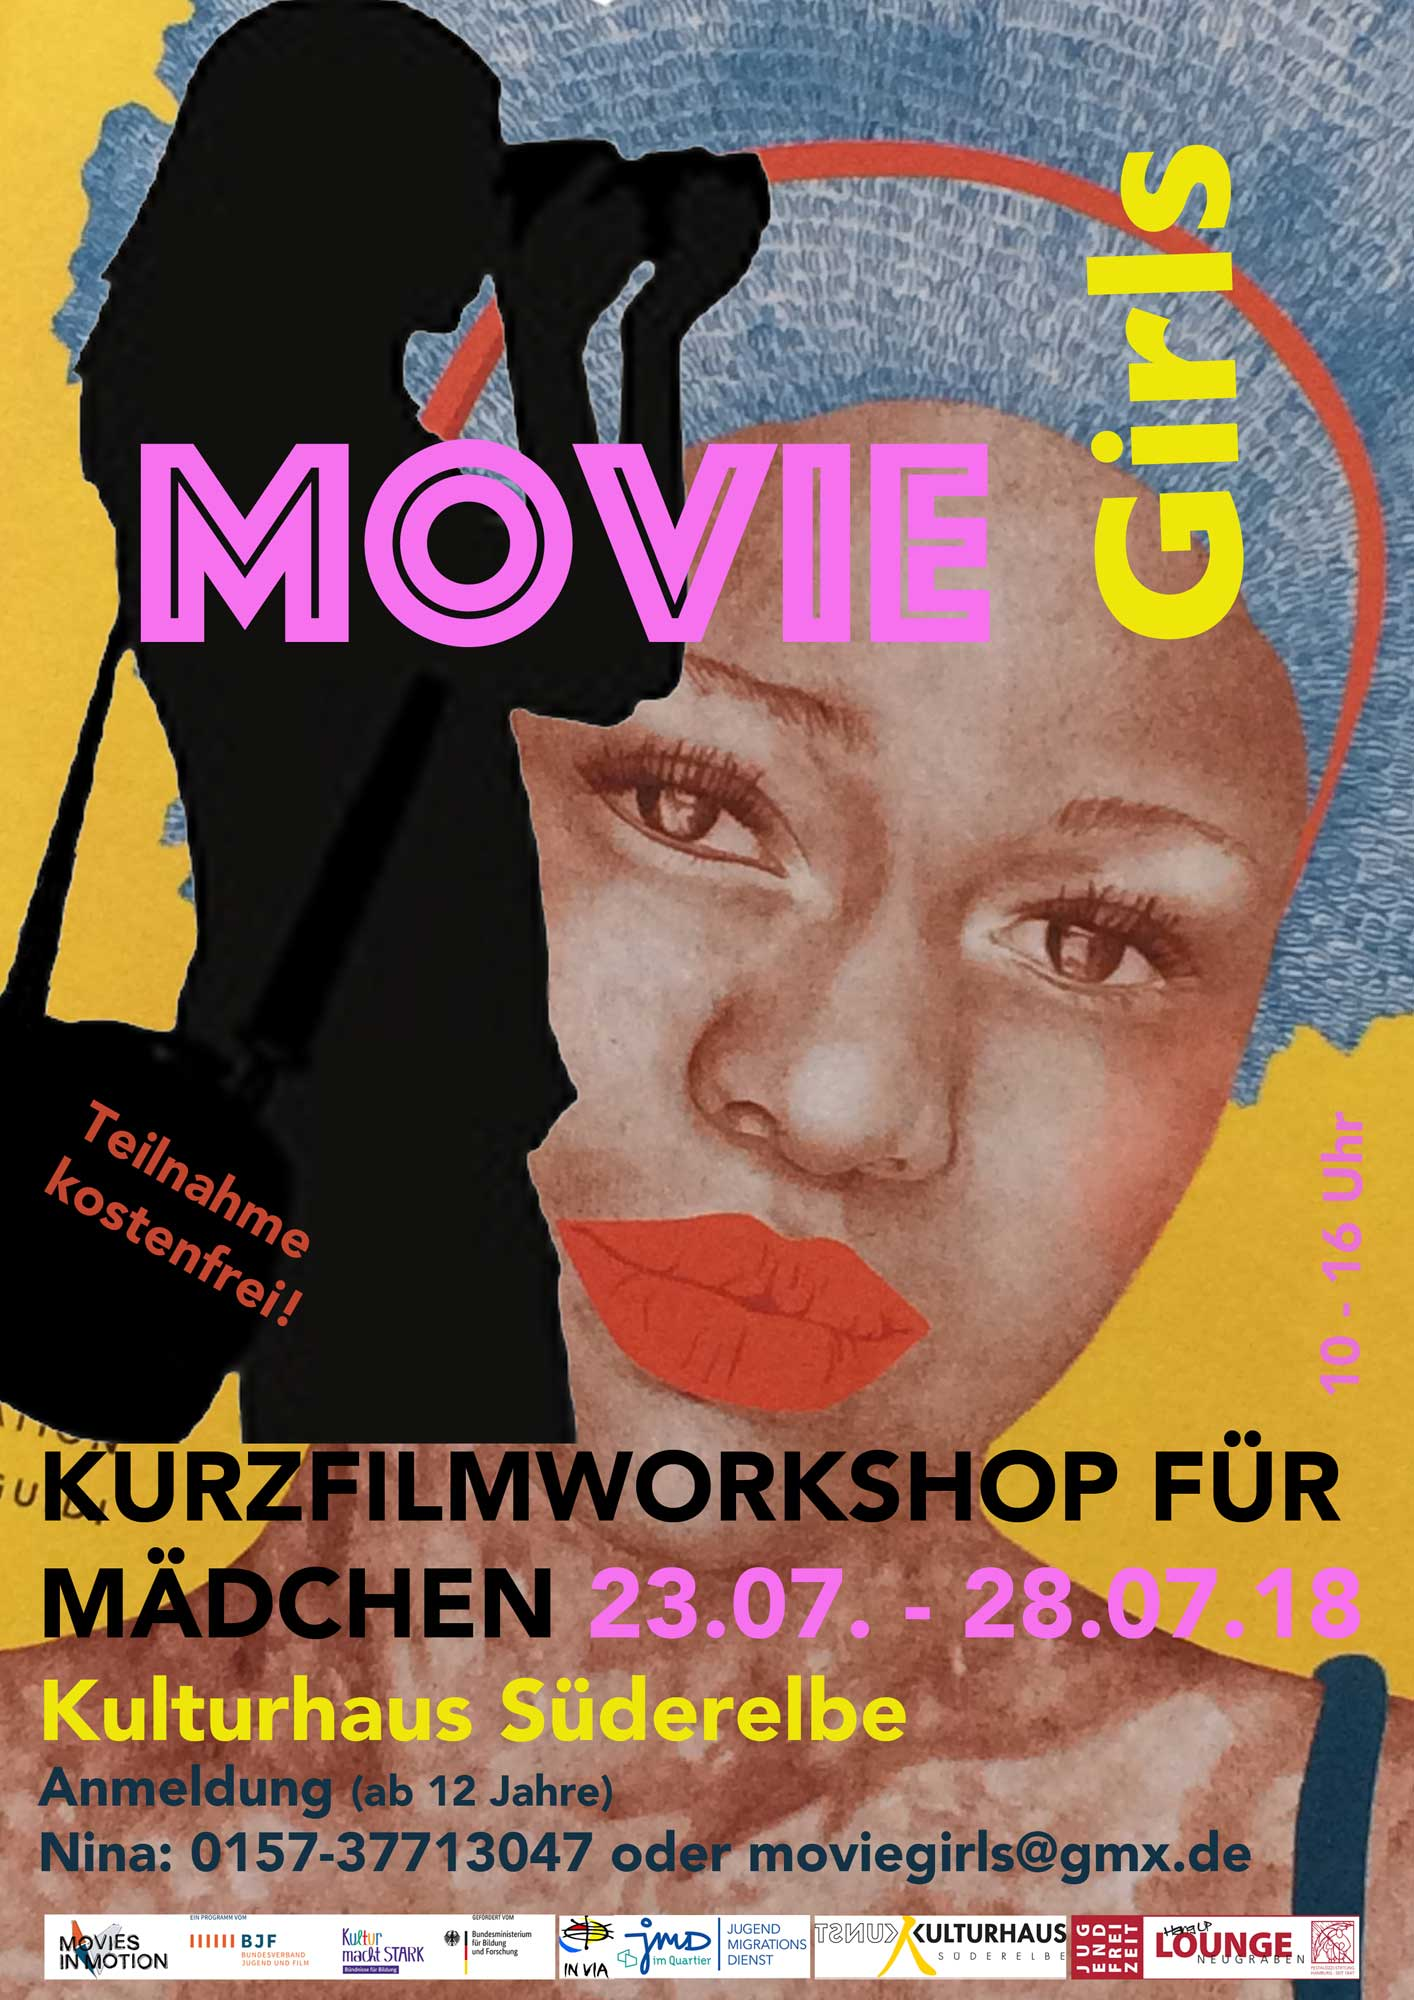 Moviegirls1 MOVIE Girls   Kurzfilmworkshop für Mädchen